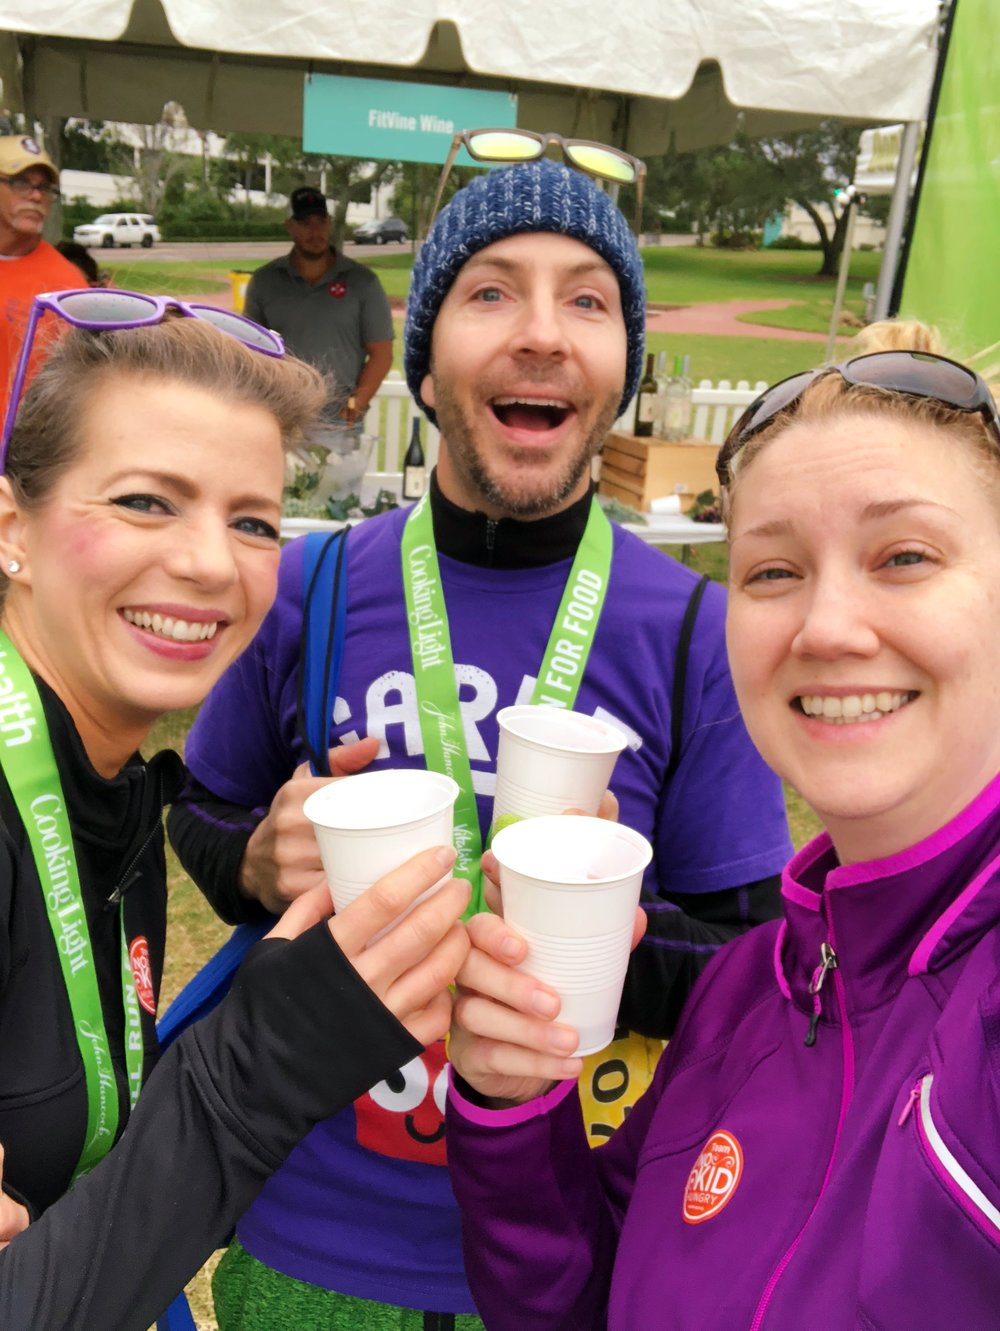 WINE at a 5K? Yes, please!